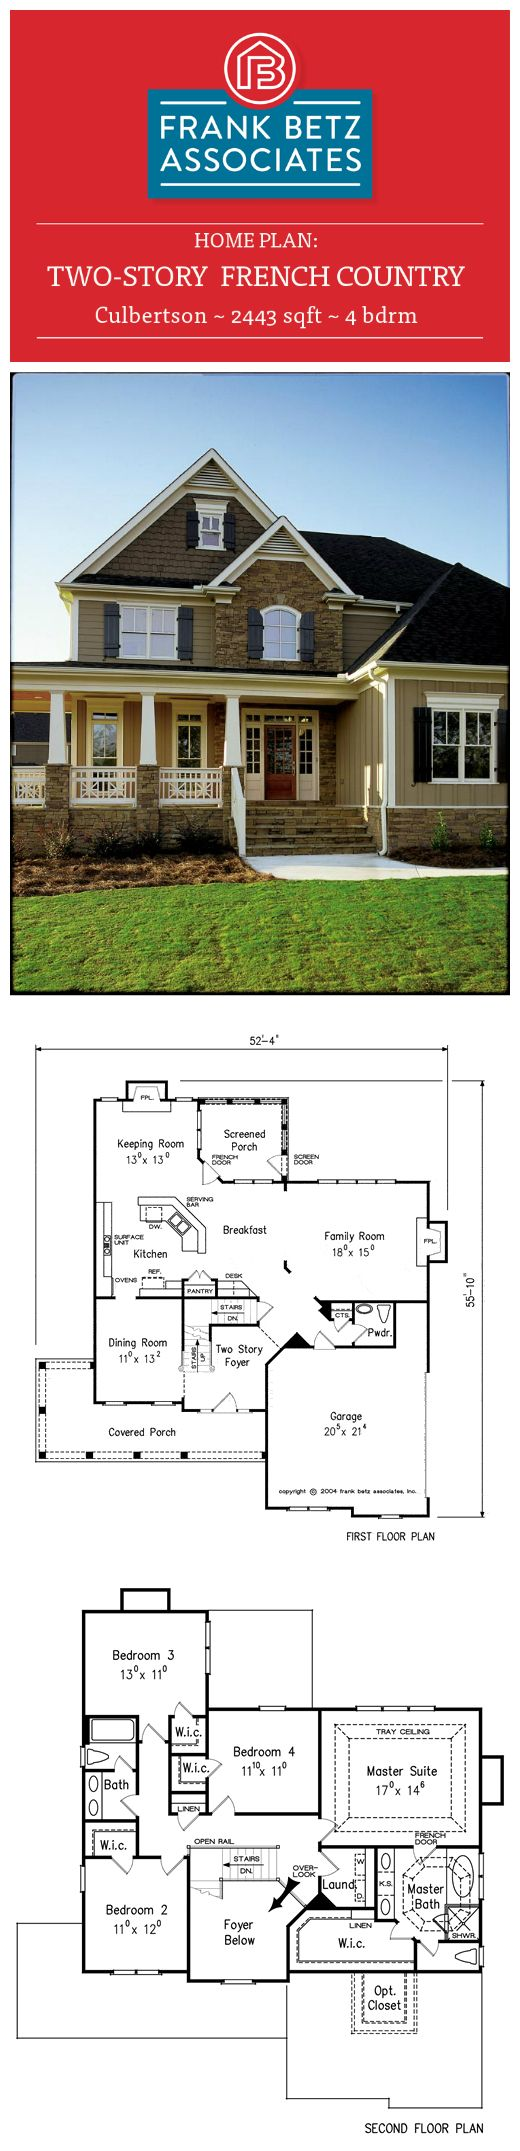 Betz house plans with large kitchen frank house plans designs ideas - 66 Best New Plans And Tips Images On Pinterest House Plans Design House Floor Plans And Fun House